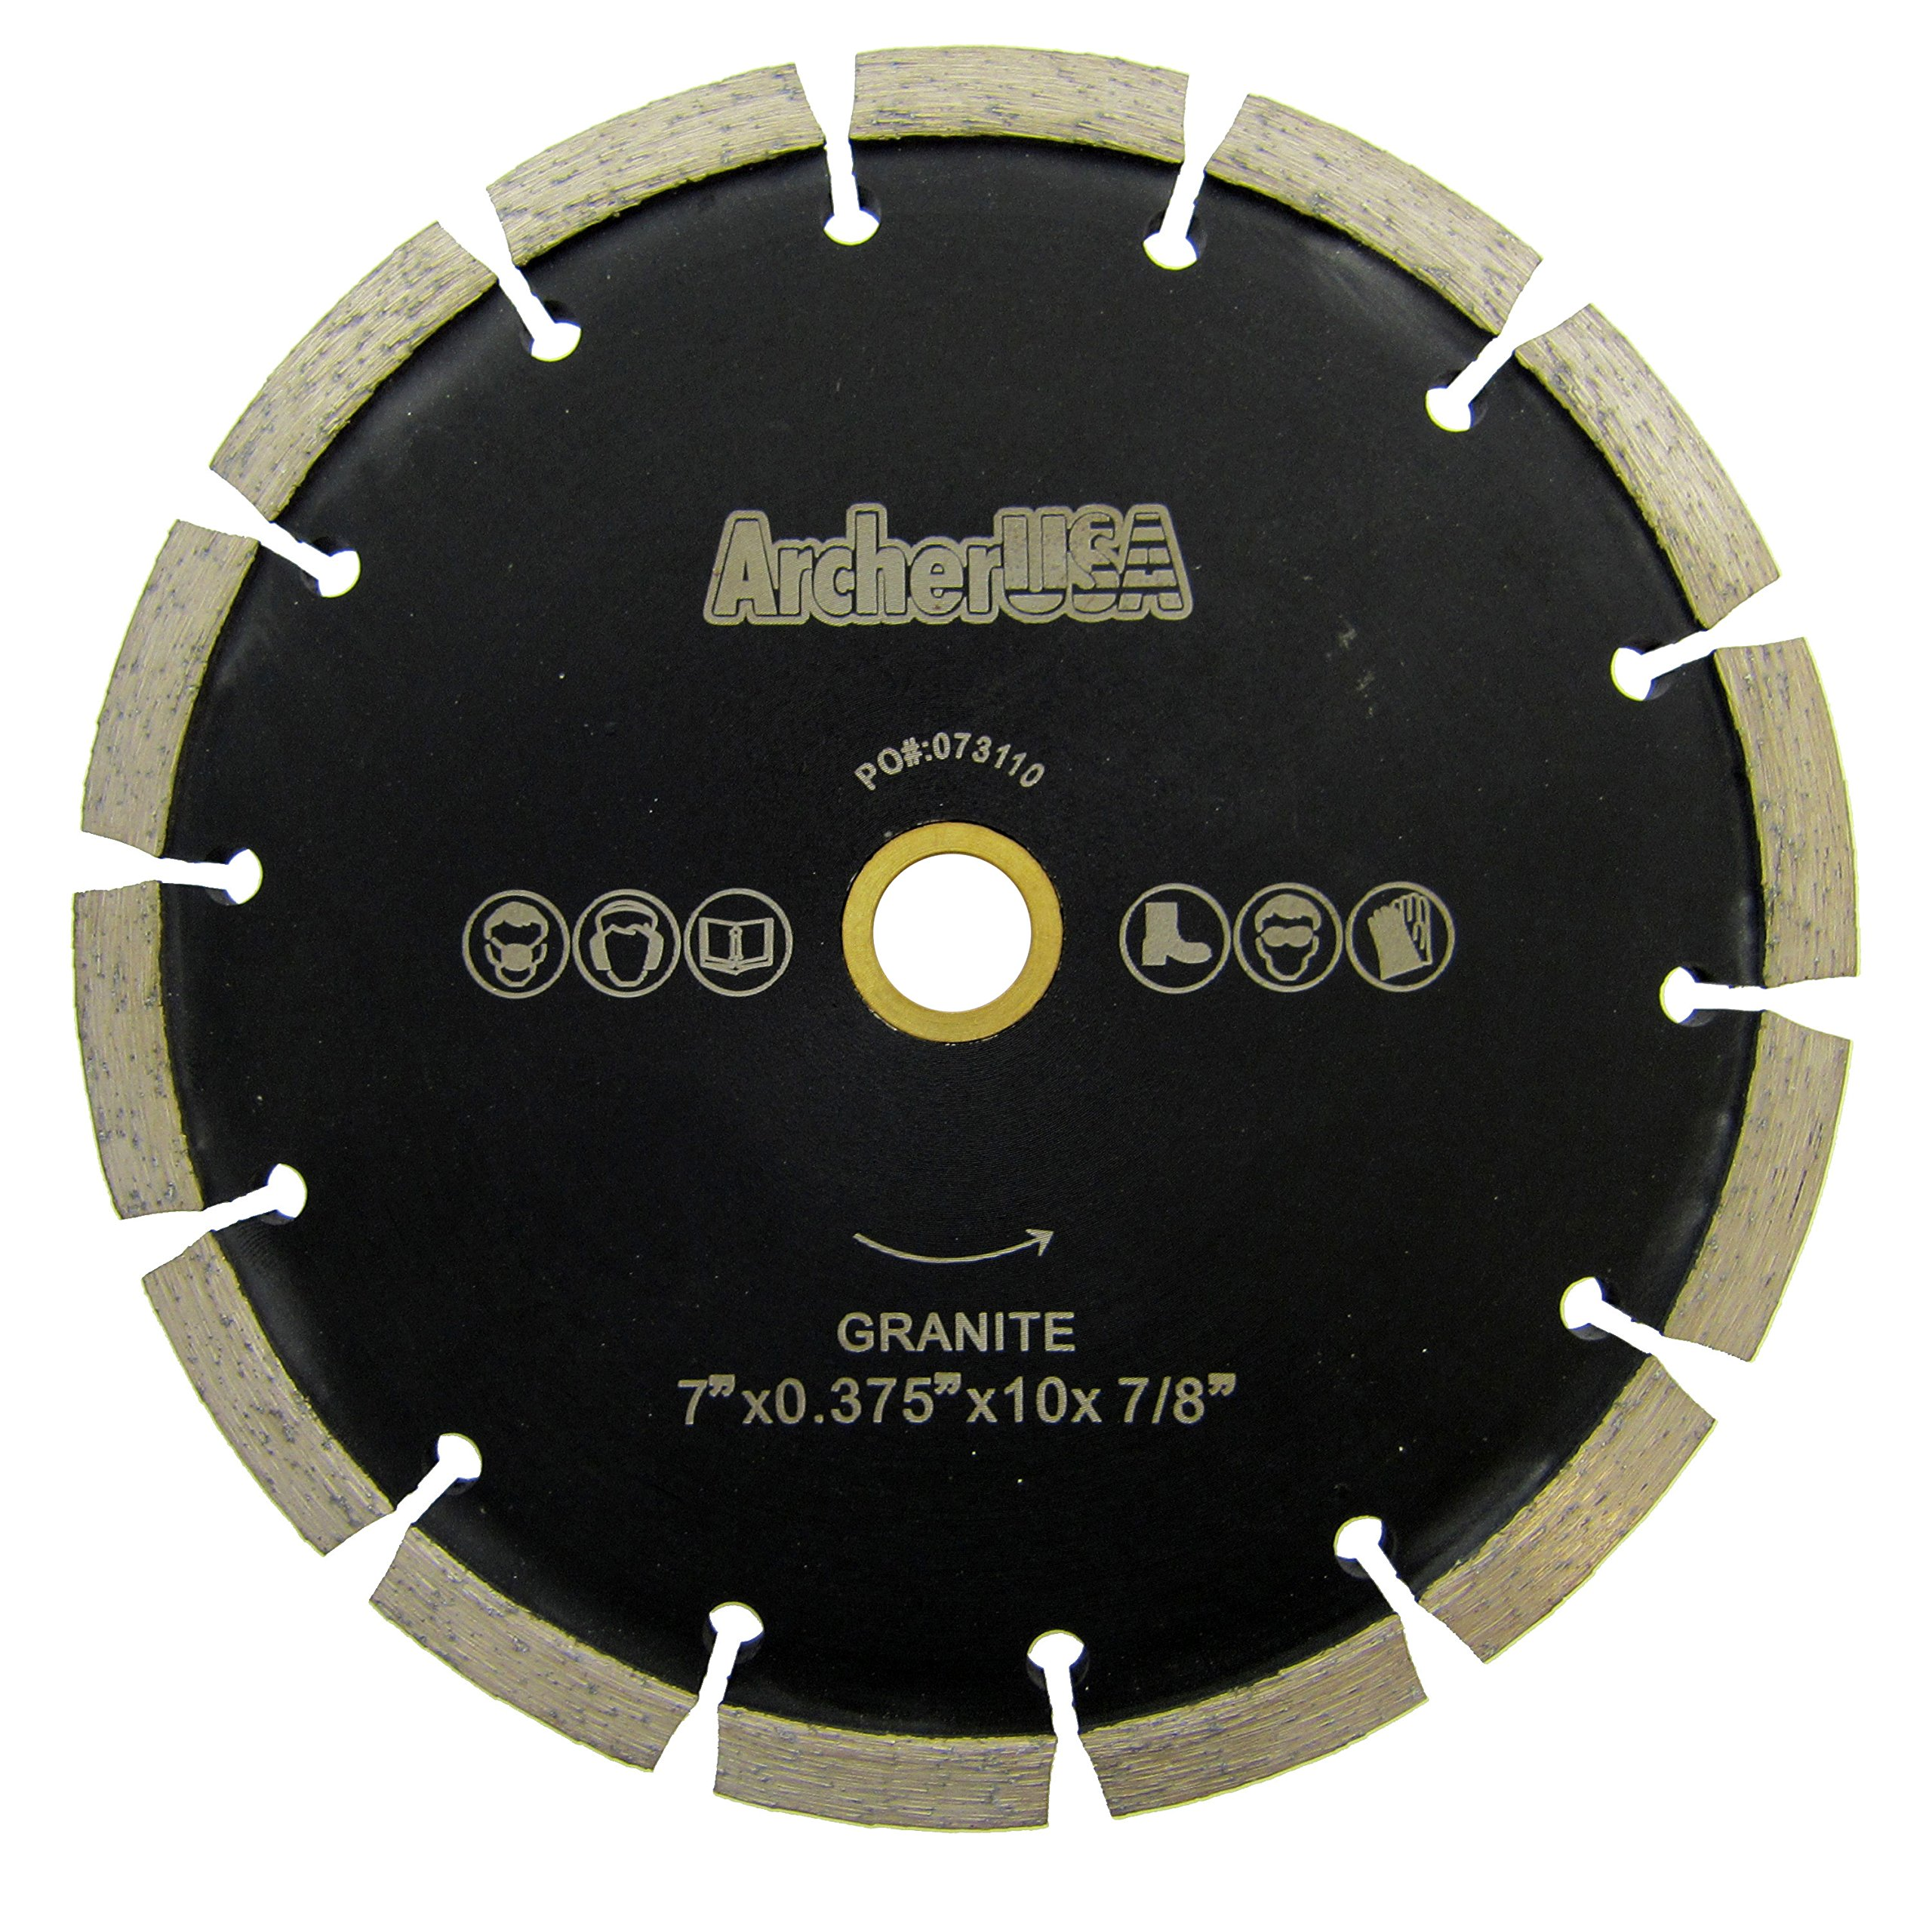 Archer USA Crack Chaser Diamond Saw Blade for Concrete Repair (7 inch) by Archer USA / Dexpan USA